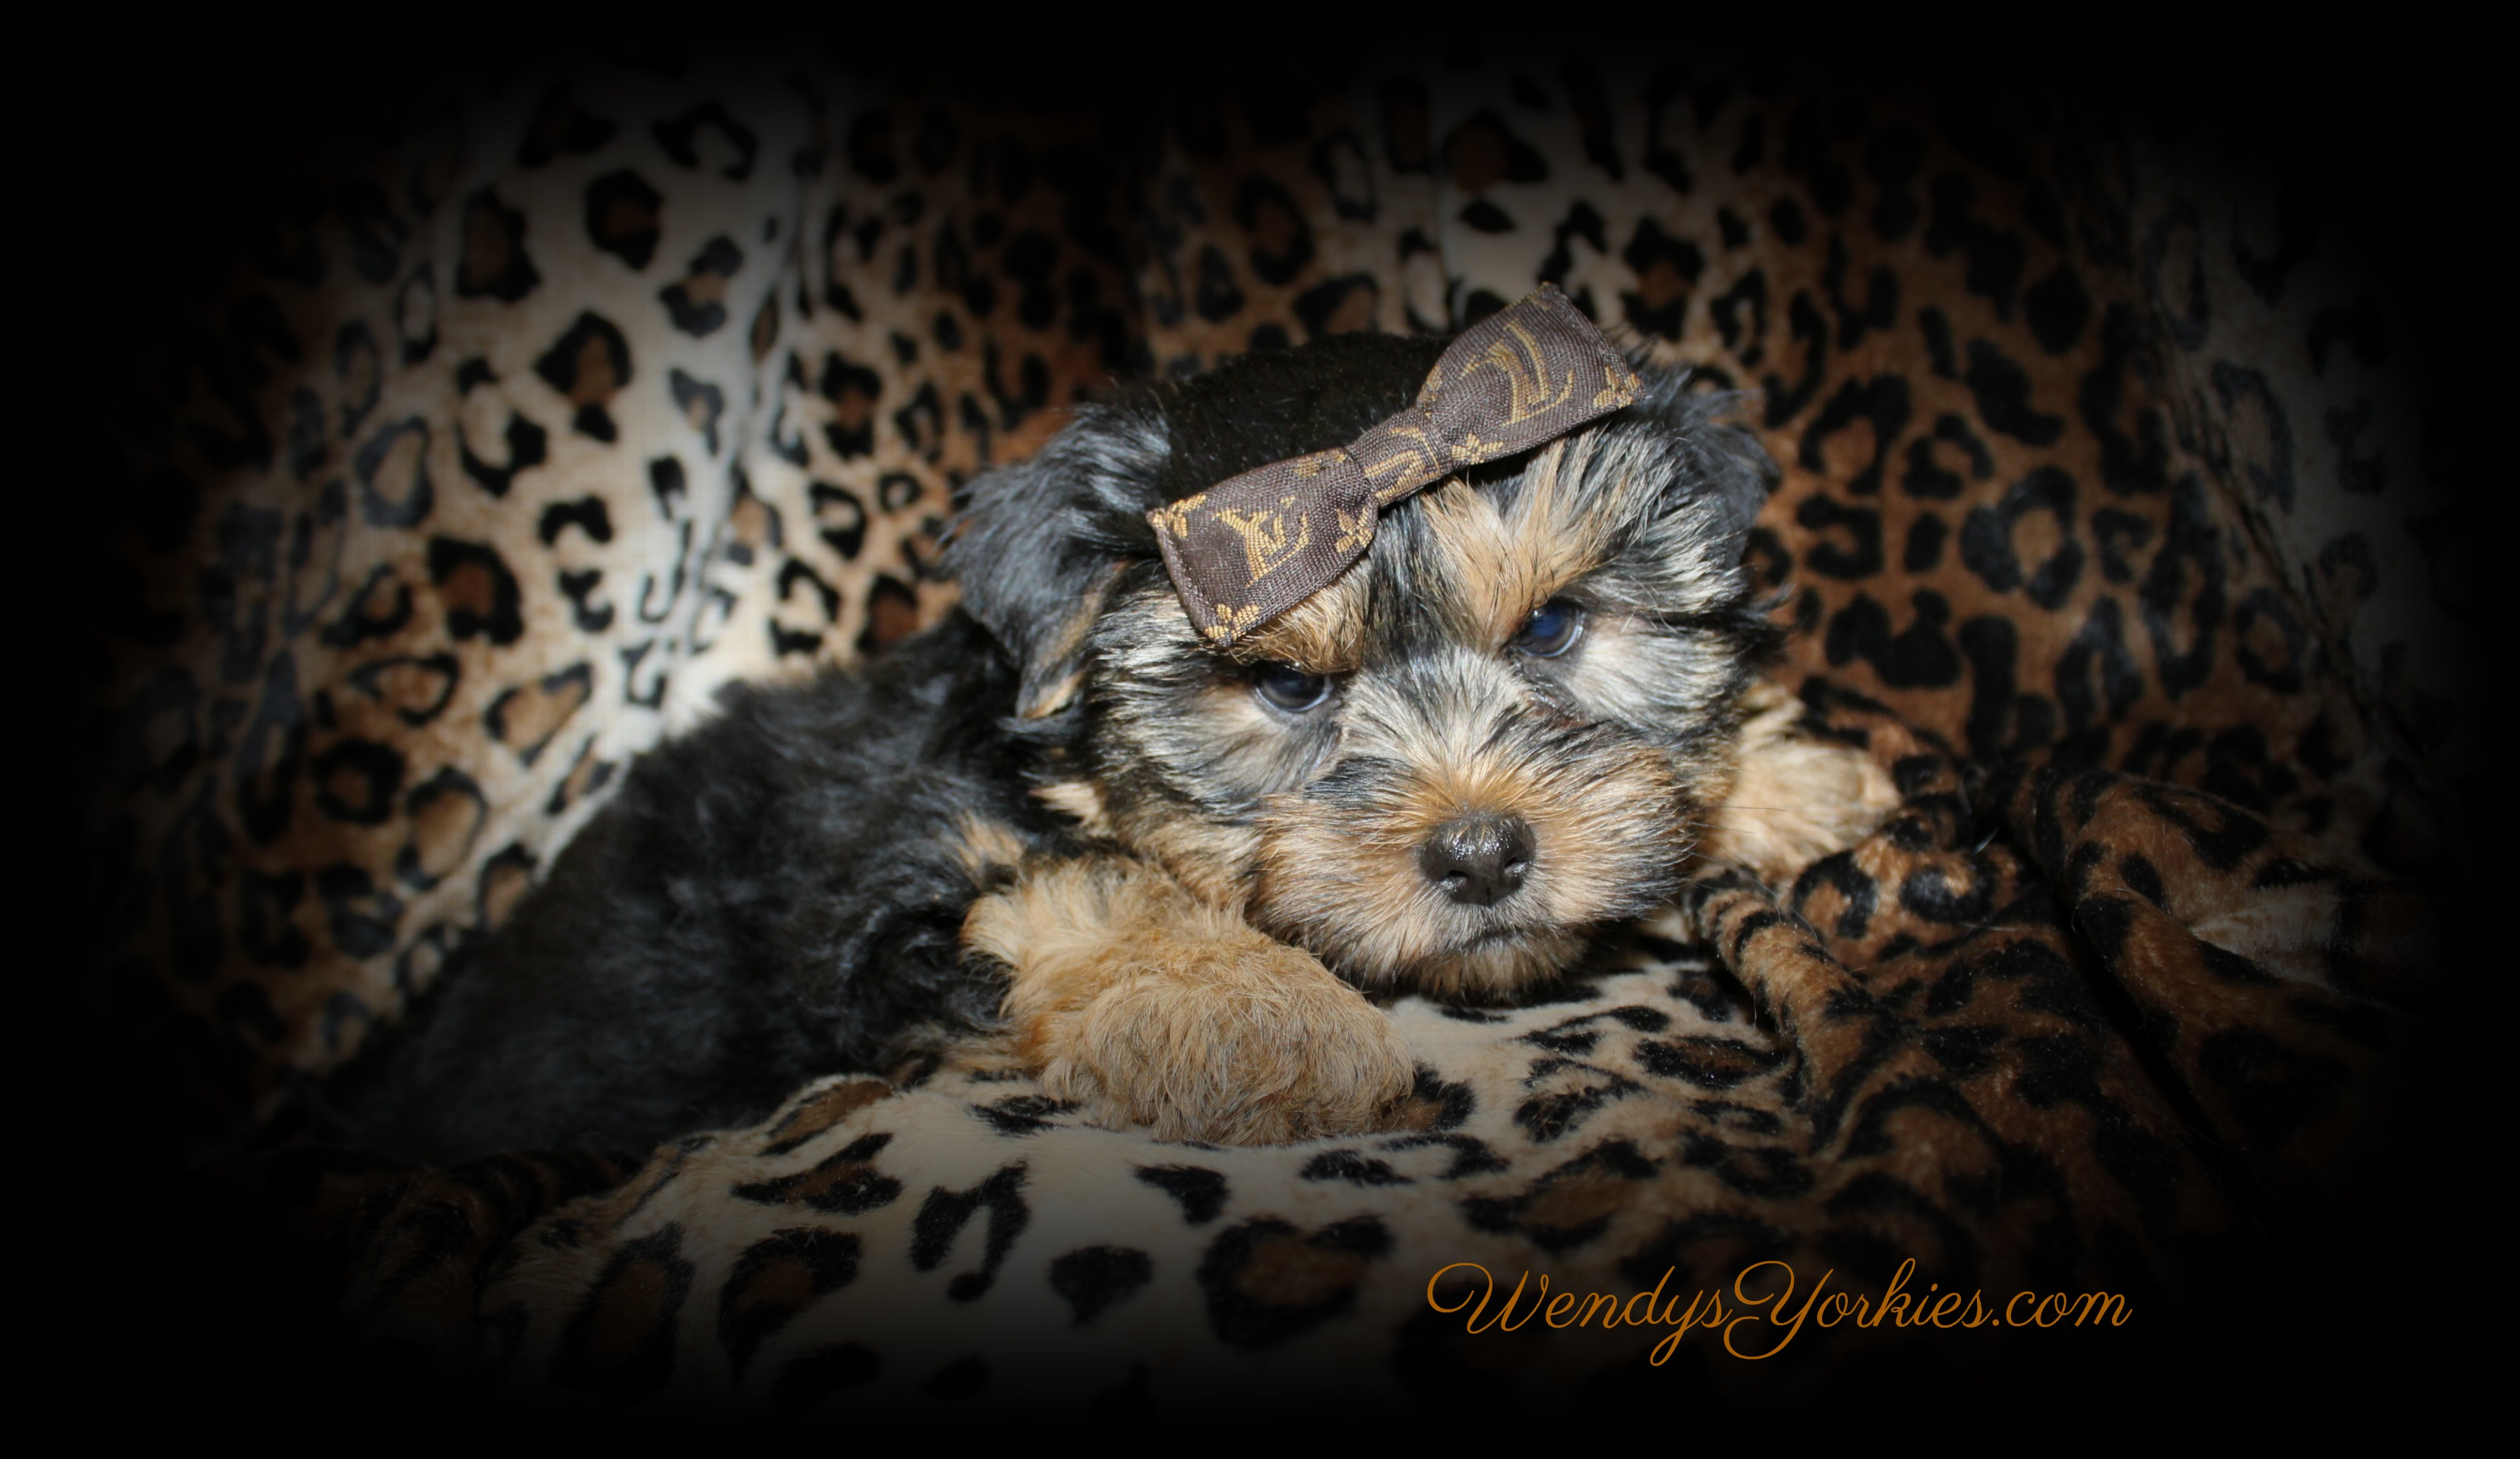 Yorkie puppies for sale in Texas, Phoebe m1, WendysYorkies.com